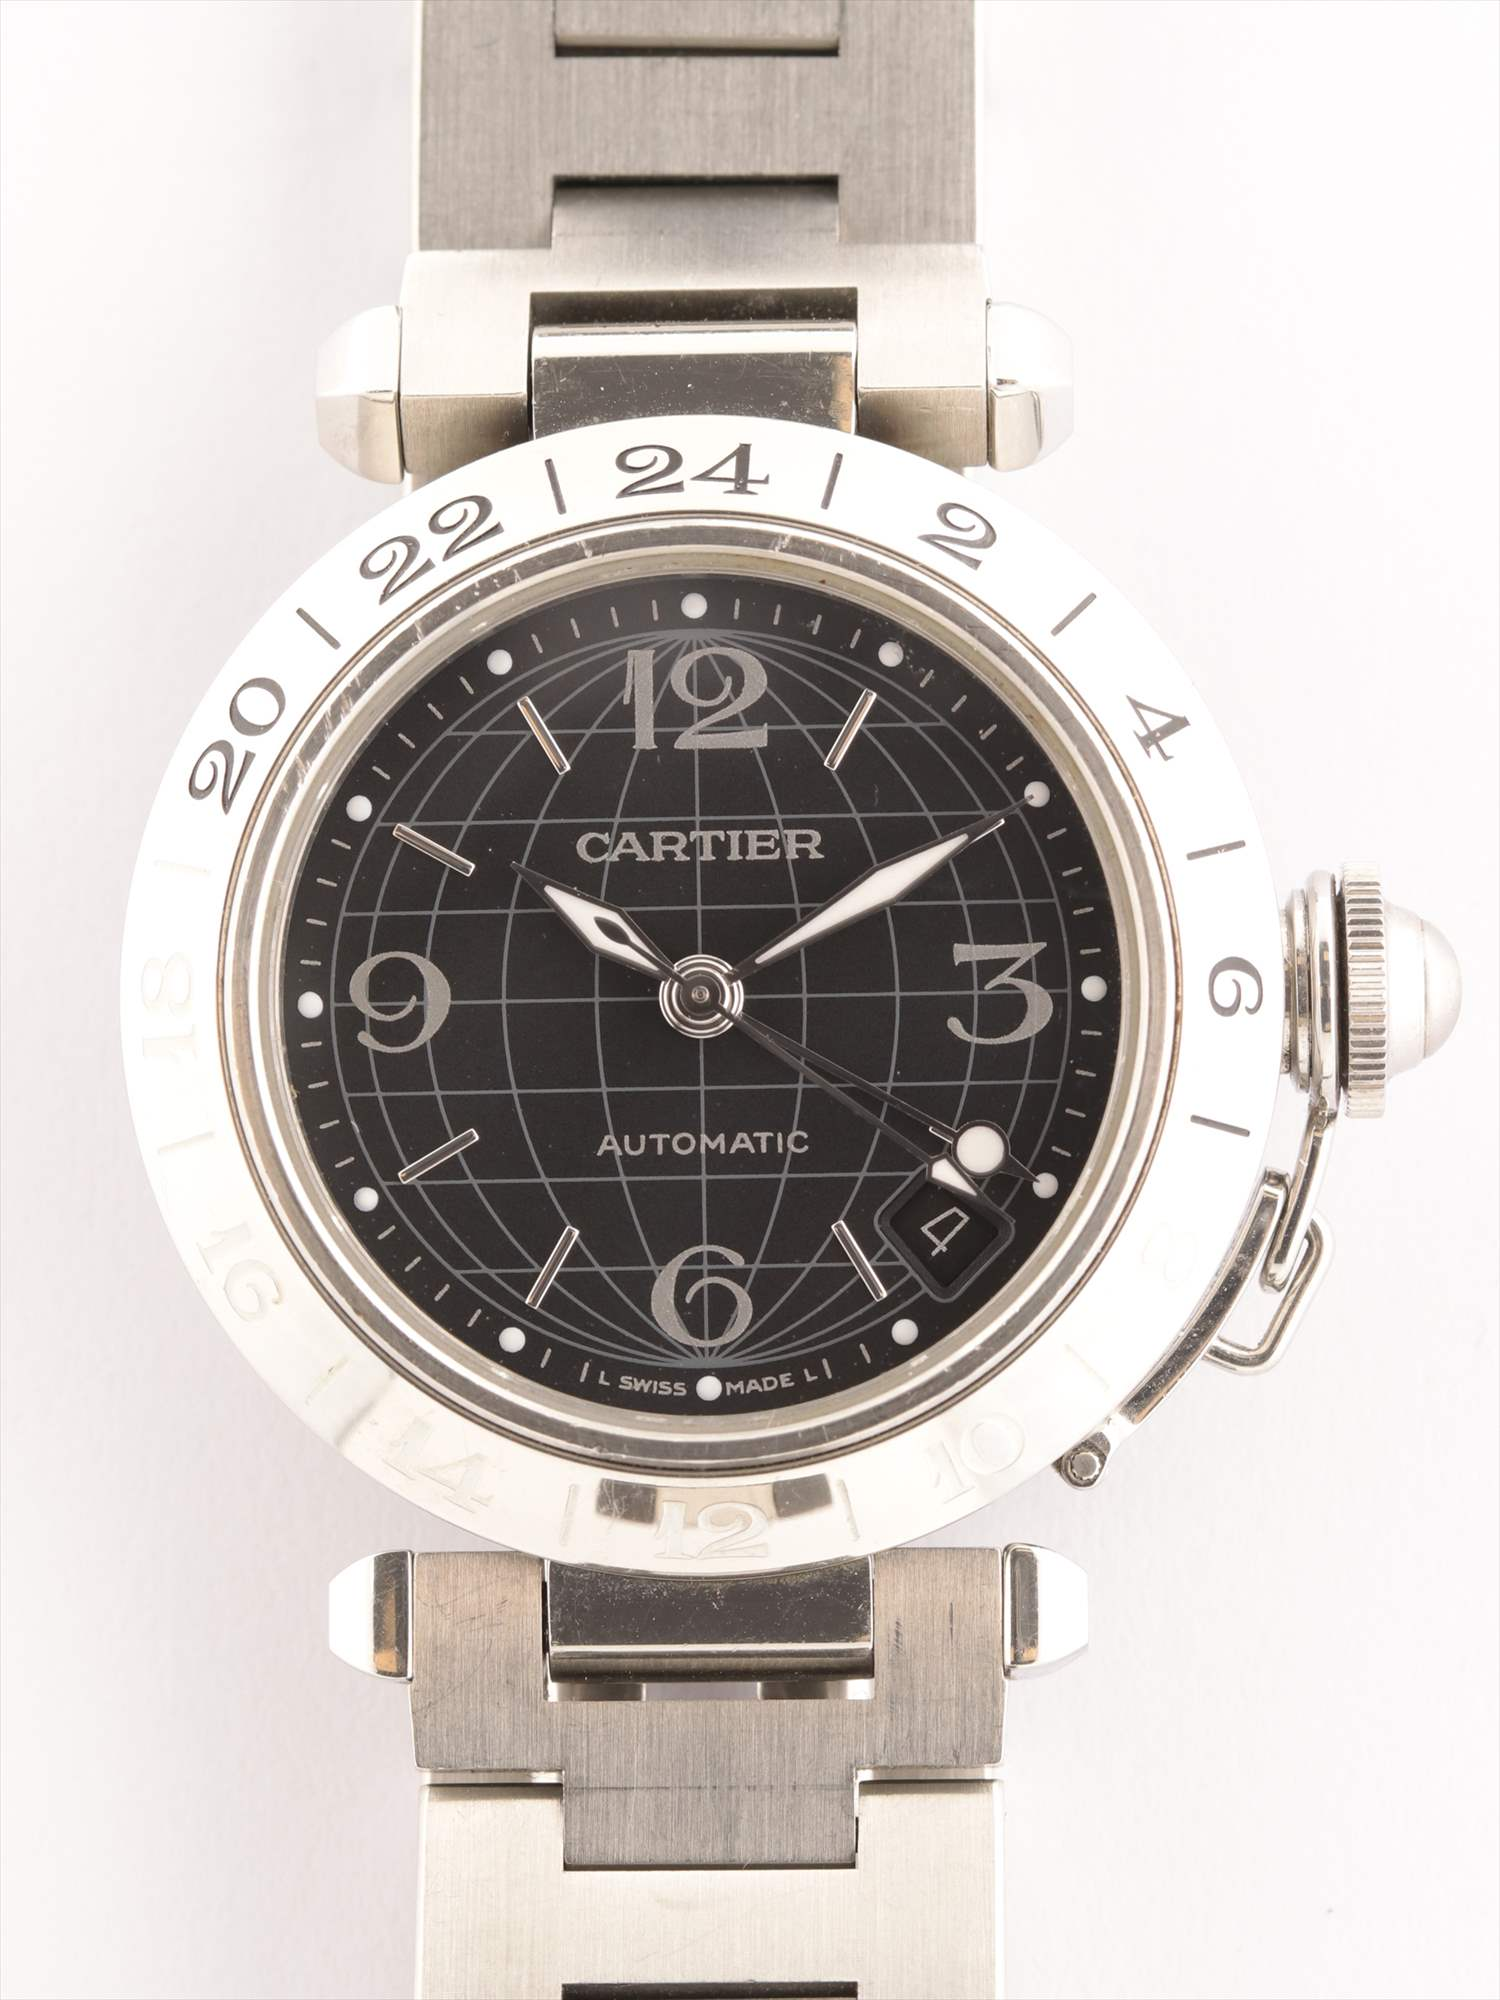 [Used article] Cartier Pasha C Meridian 2377 SS AT black board too much sesame seeds 2